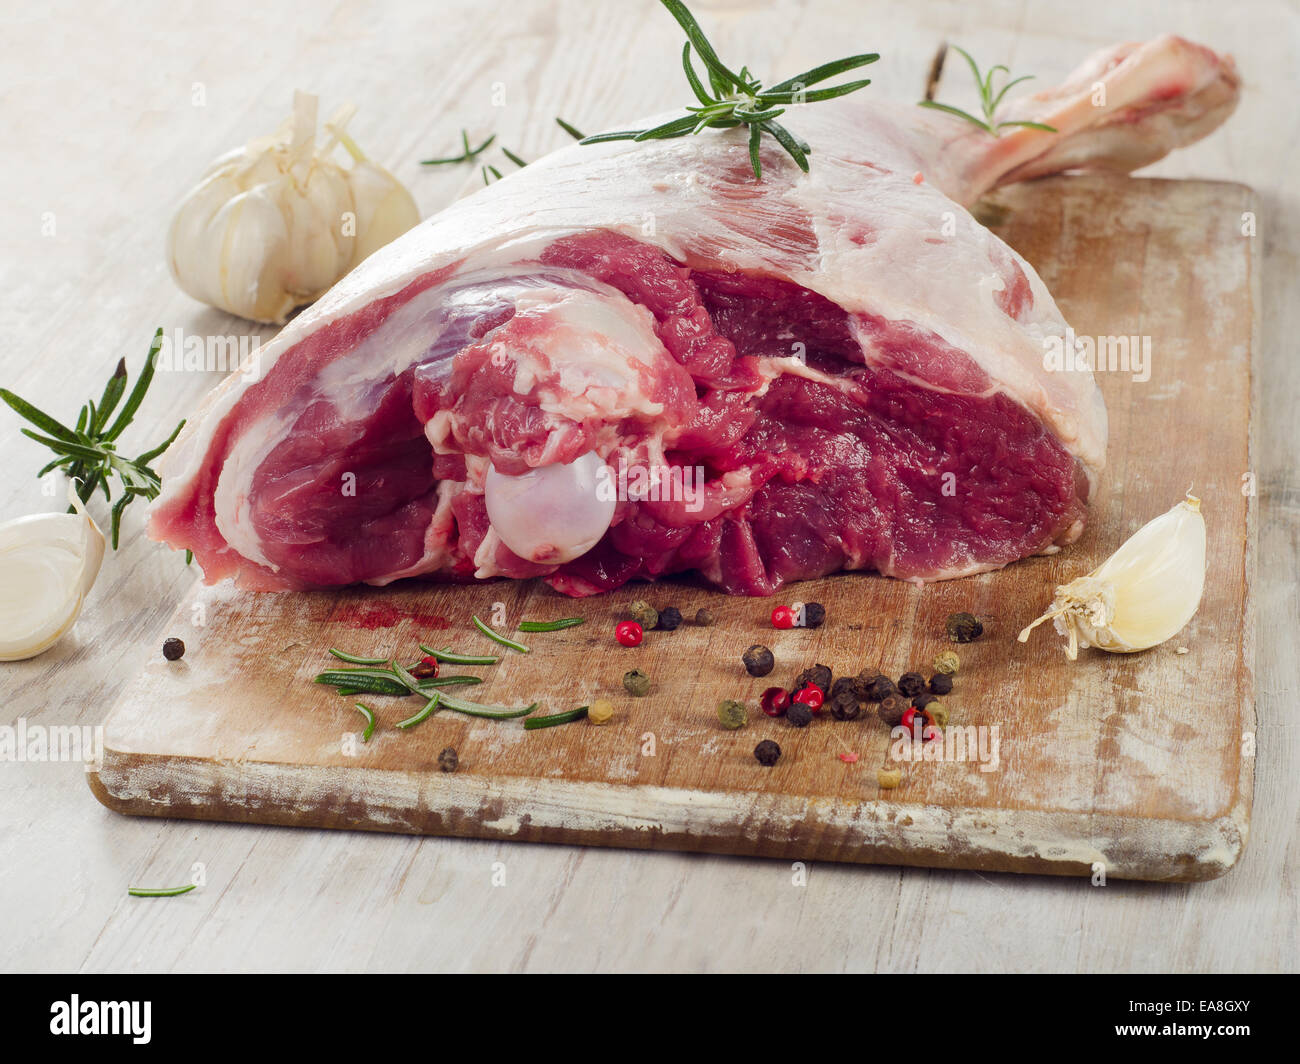 Raw lamb leg on a wooden table. - Stock Image